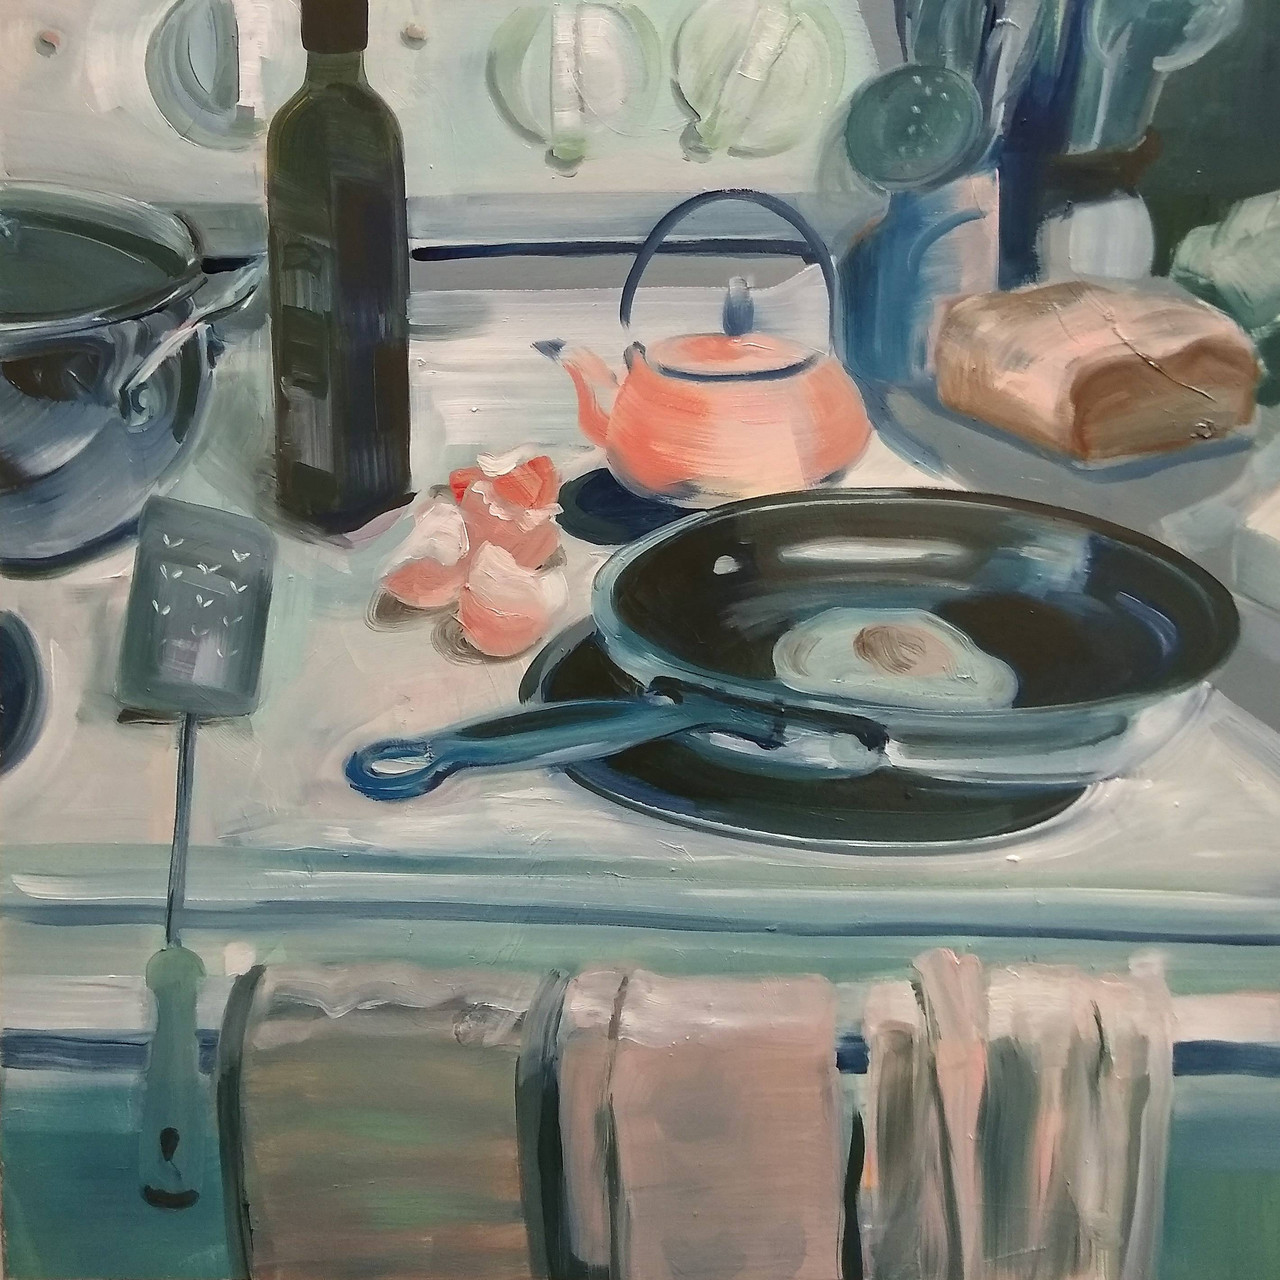 Countertop Still Life 11/13/19 painting by Noël Ash.